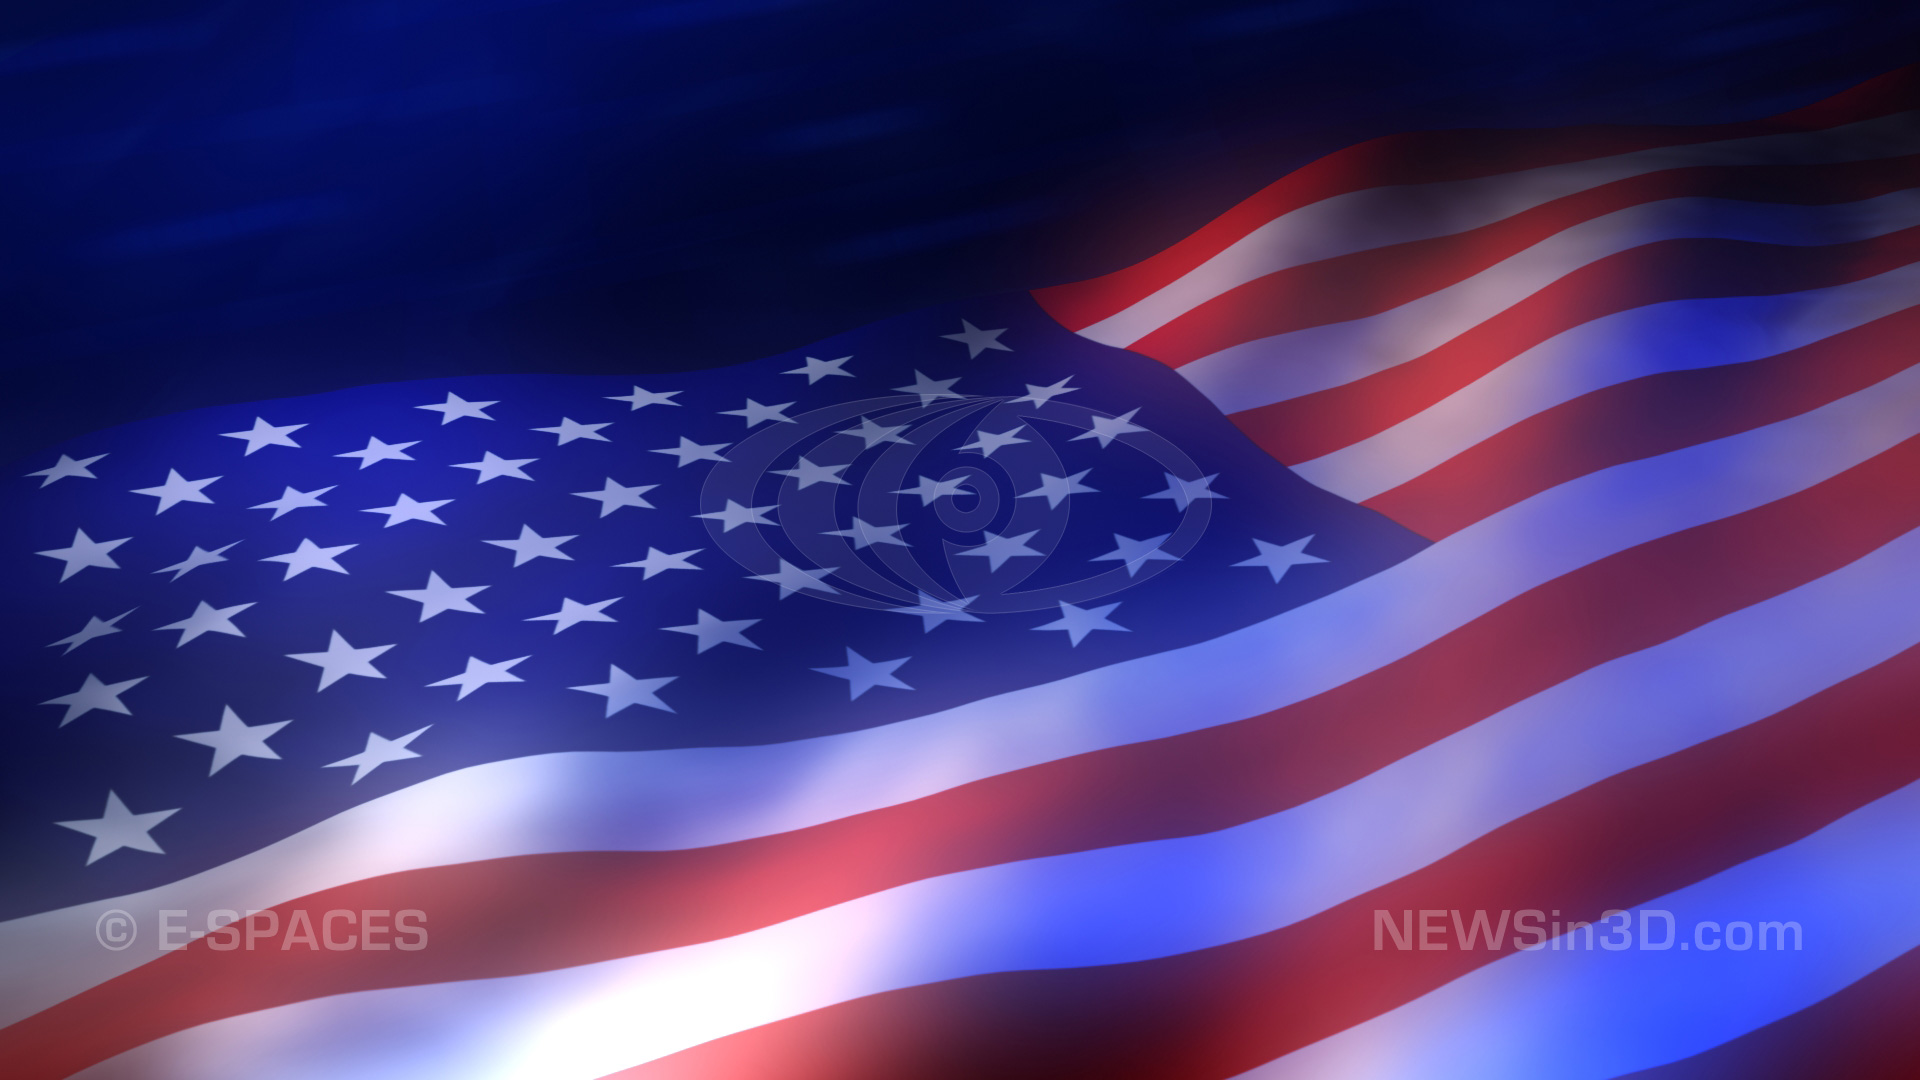 American Flag Looping Animated Background HD 1920x1080